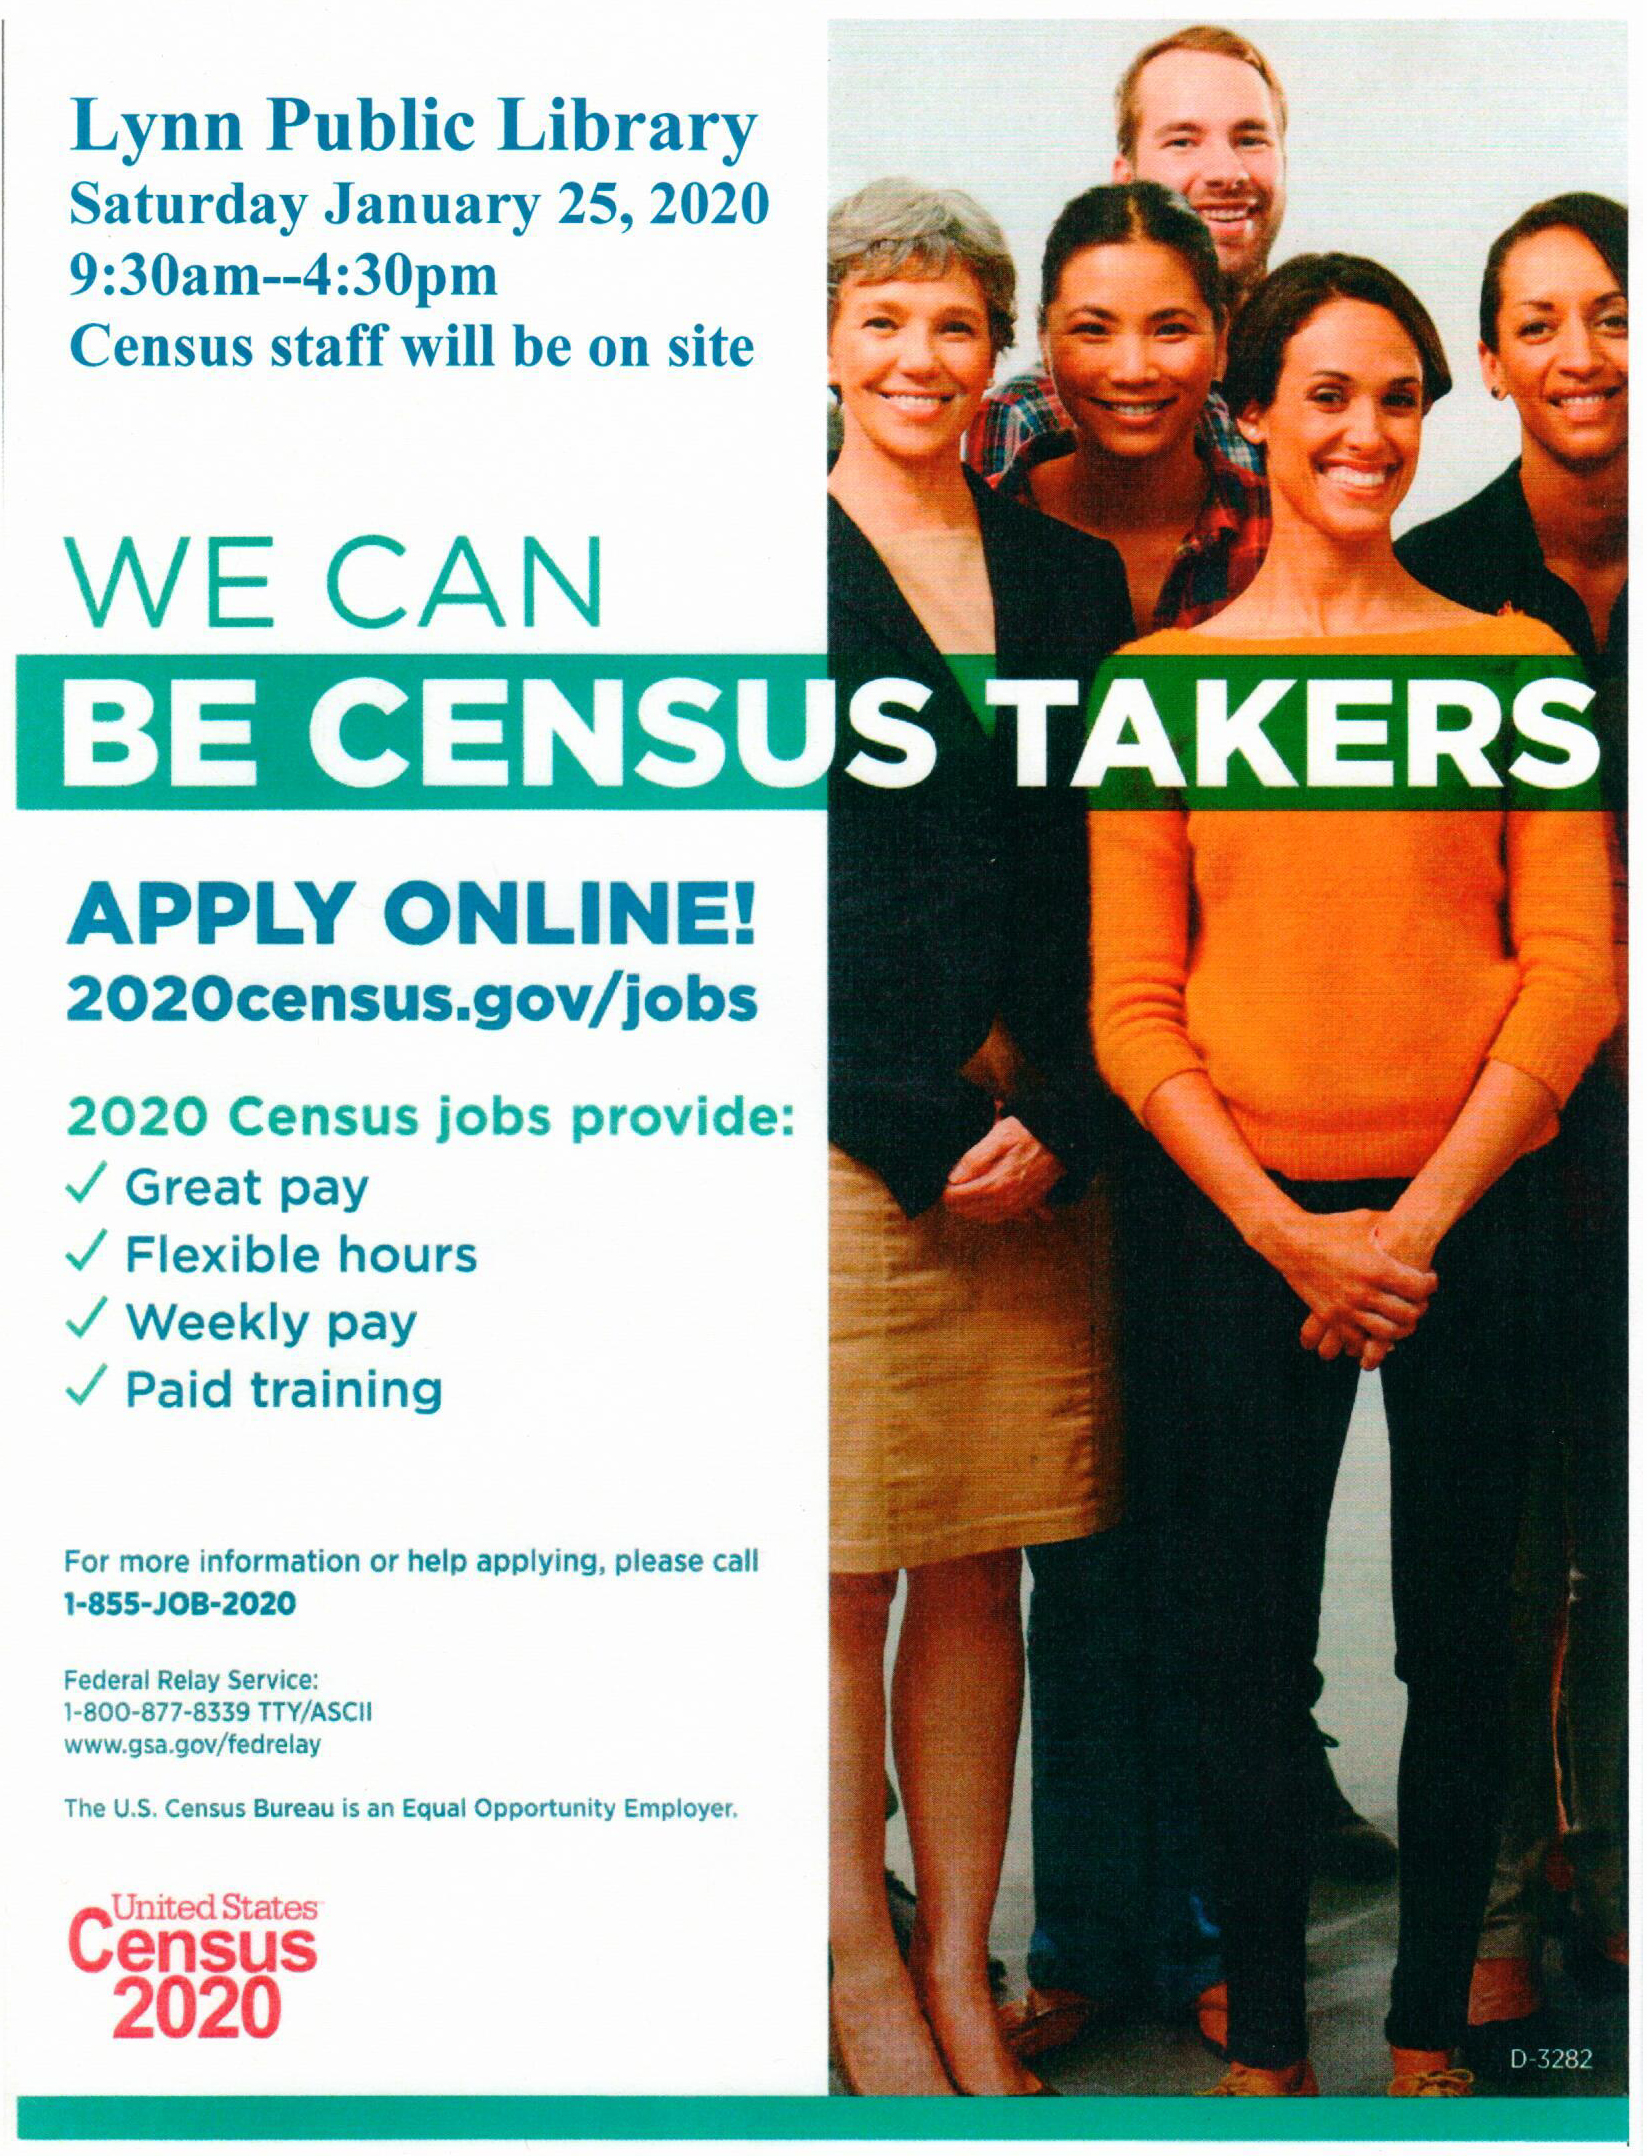 census_job_fair_jan_25_2020_930am_430pm.jpg